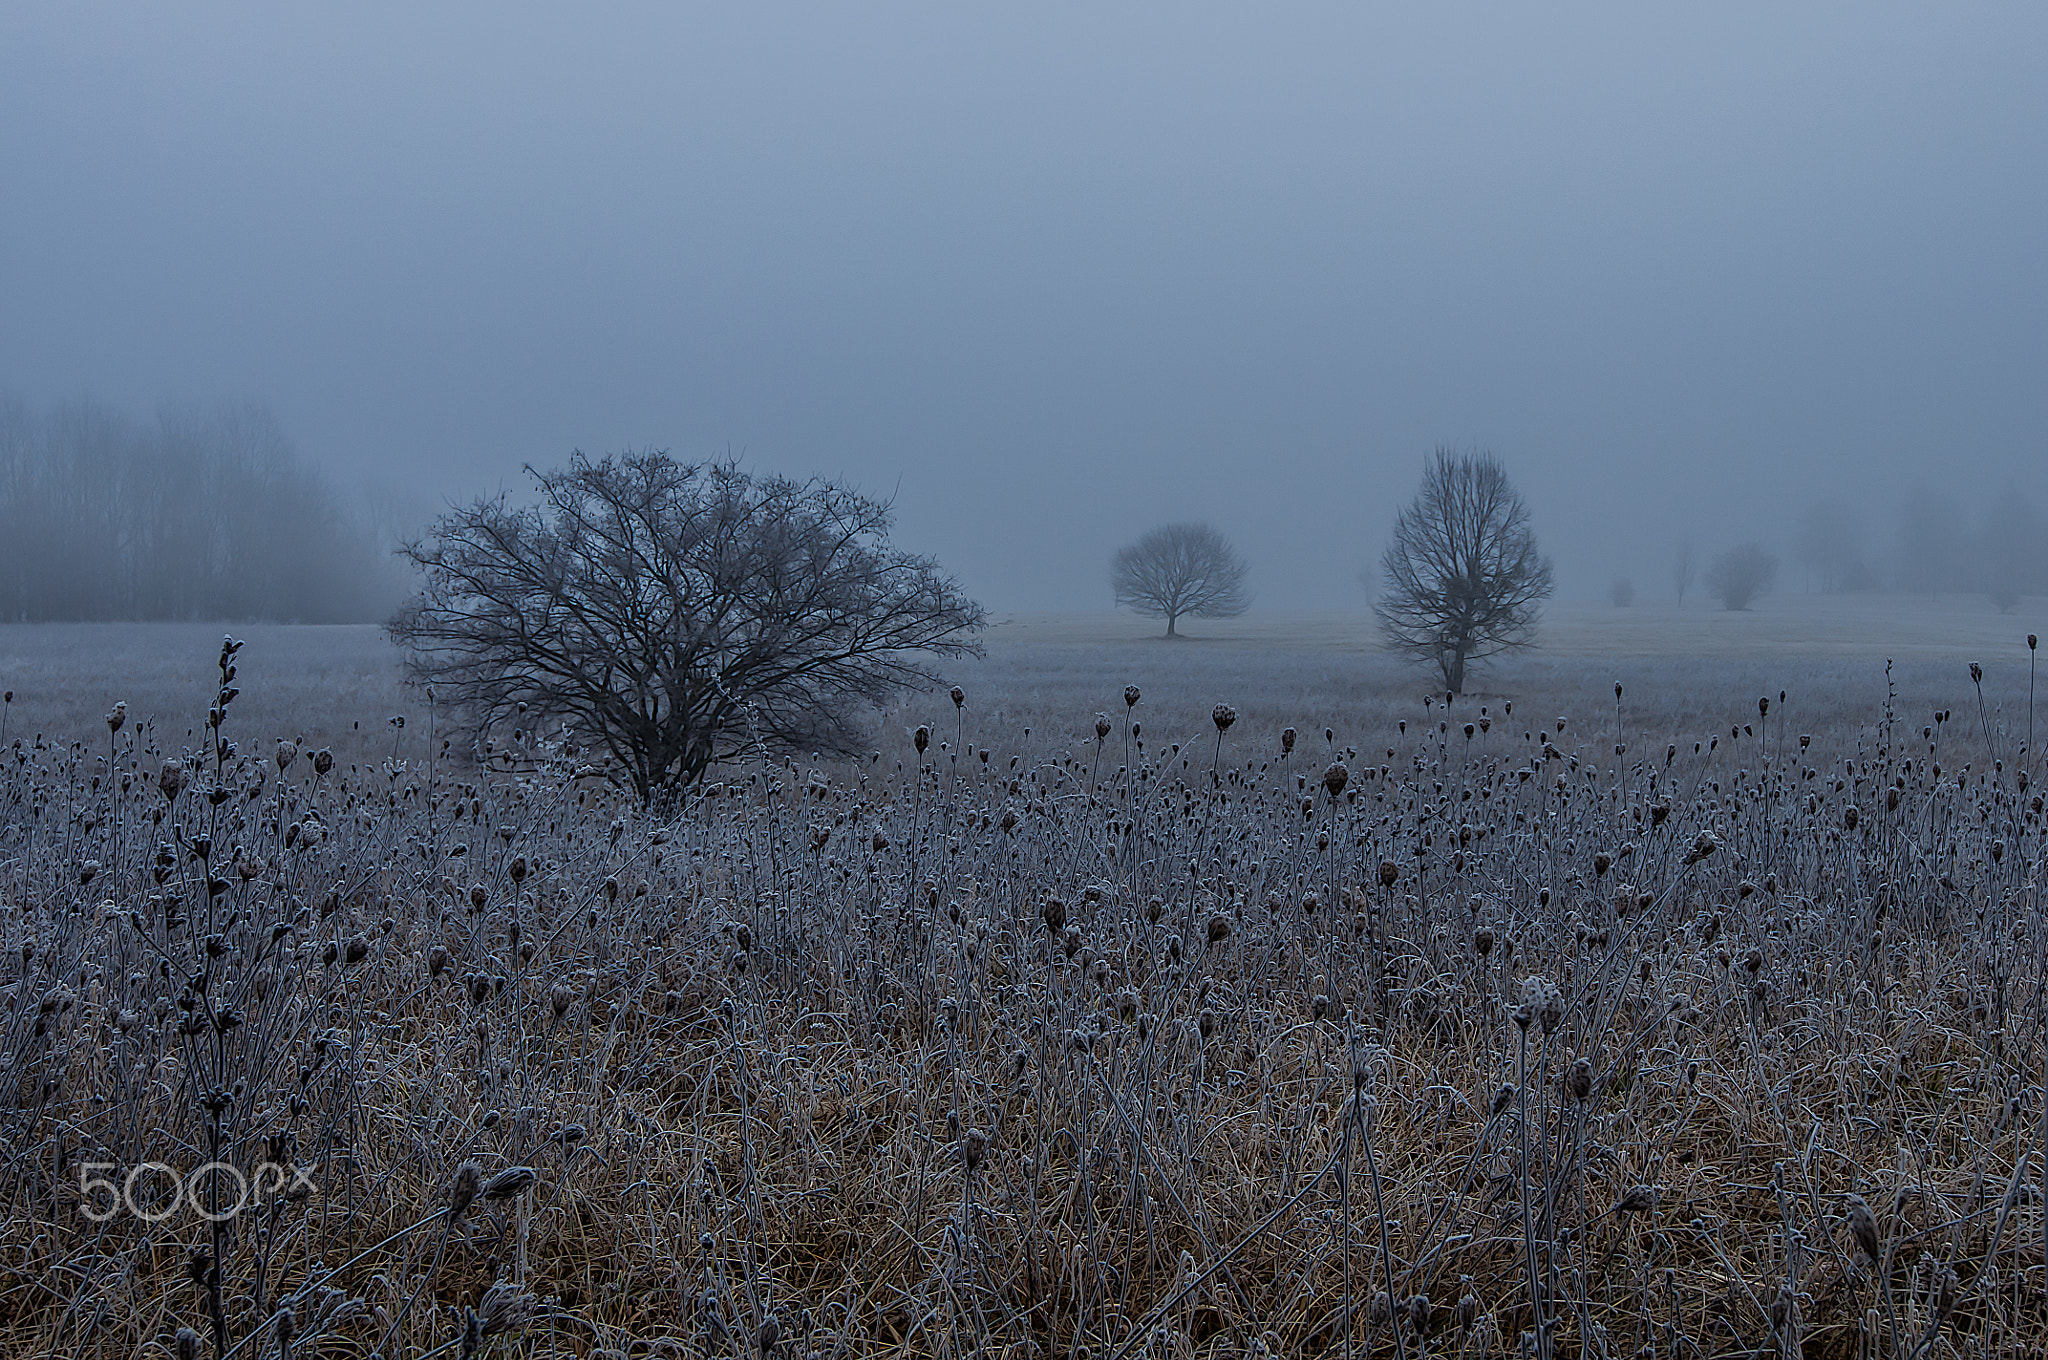 Photograph Frostmorgen by Leo Pöcksteiner on 500px